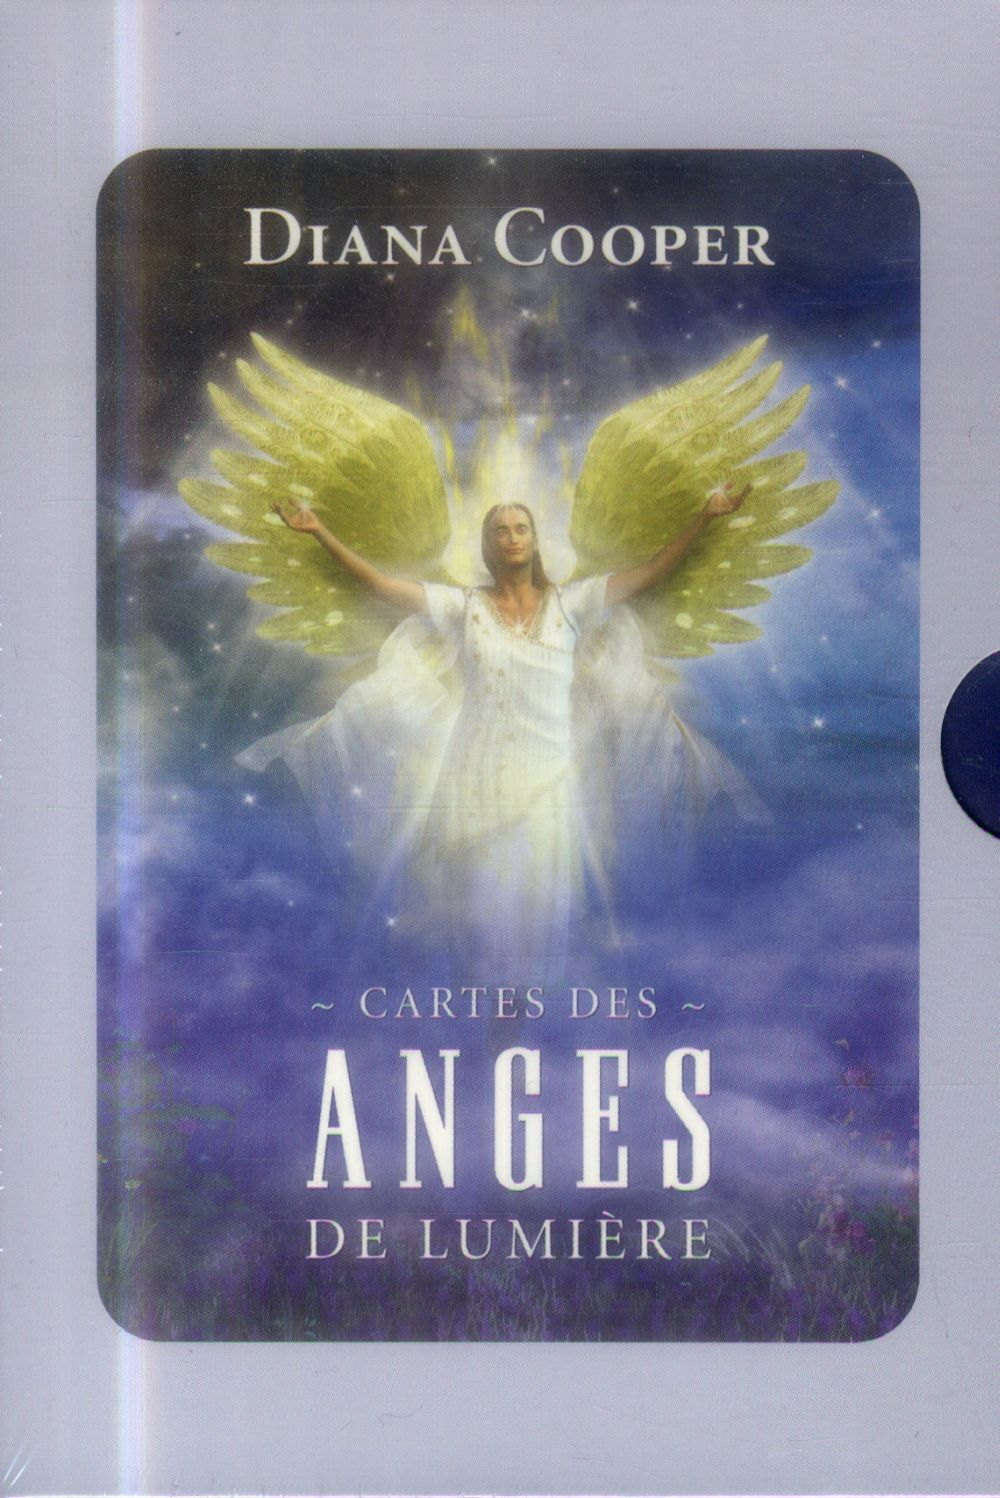 CARTES DES ANGES DE LUMIERE